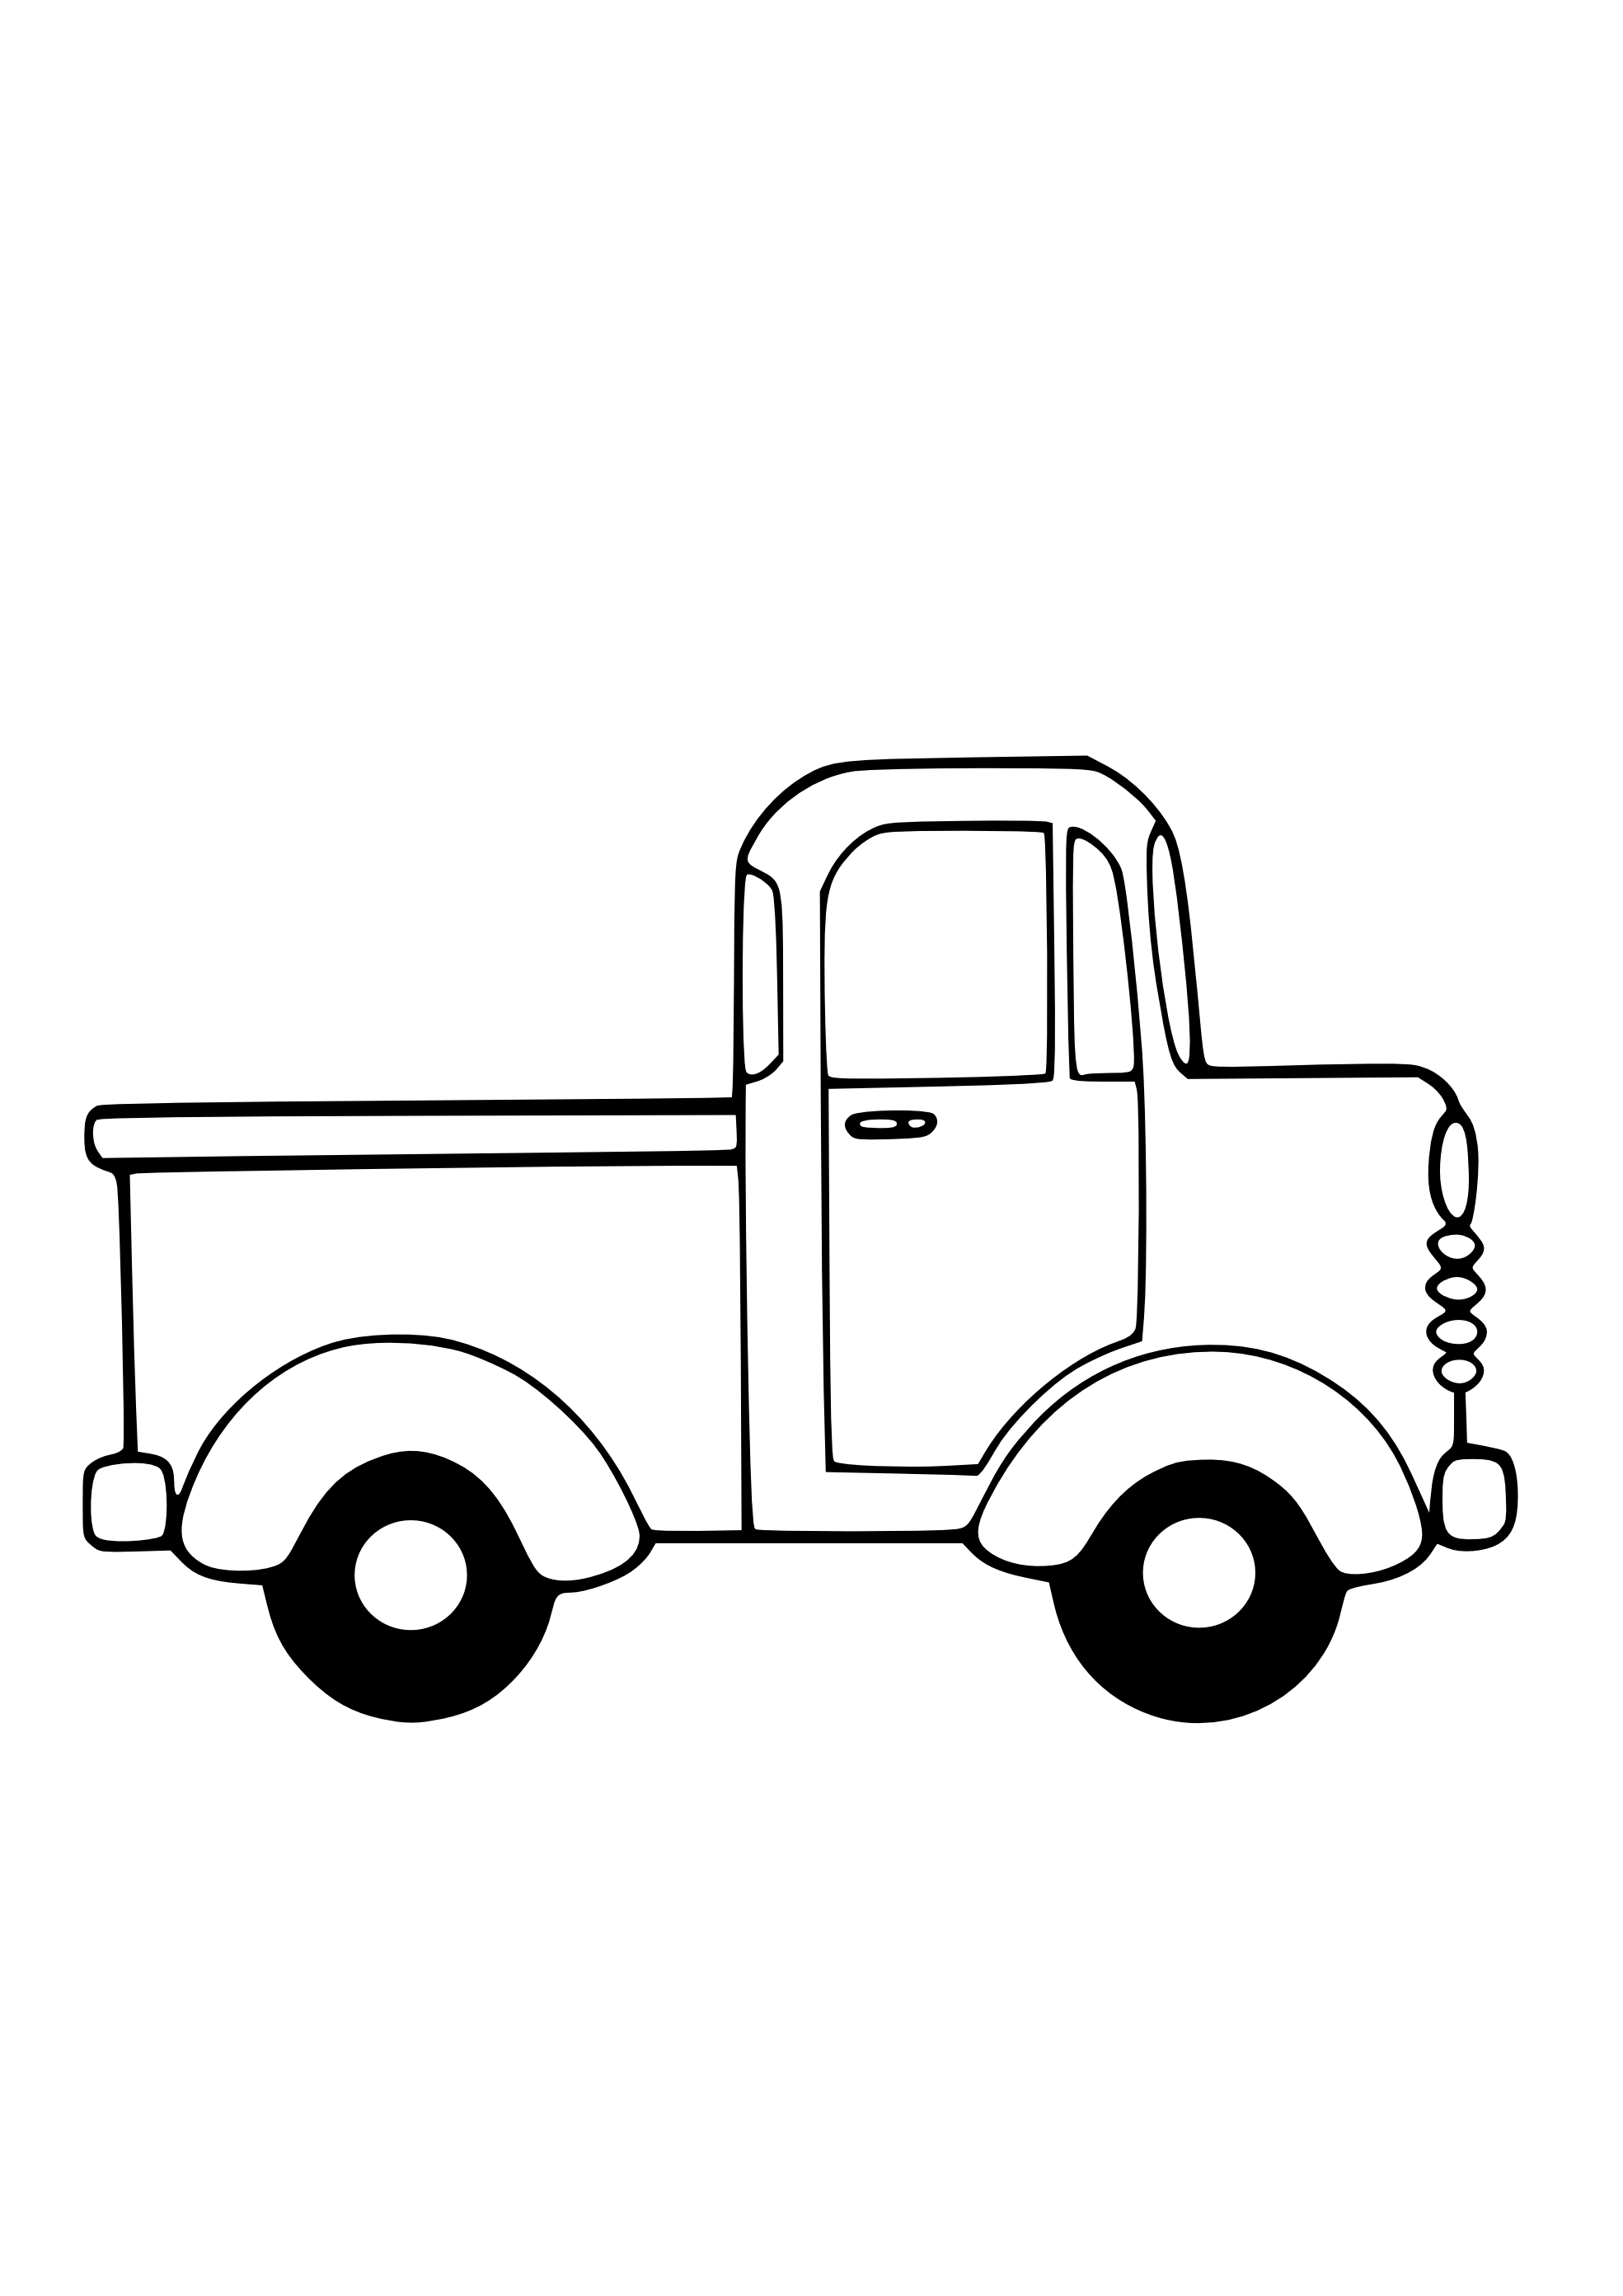 ... Truck Clipart Black And White | Clipart Panda - Free Clipart Images